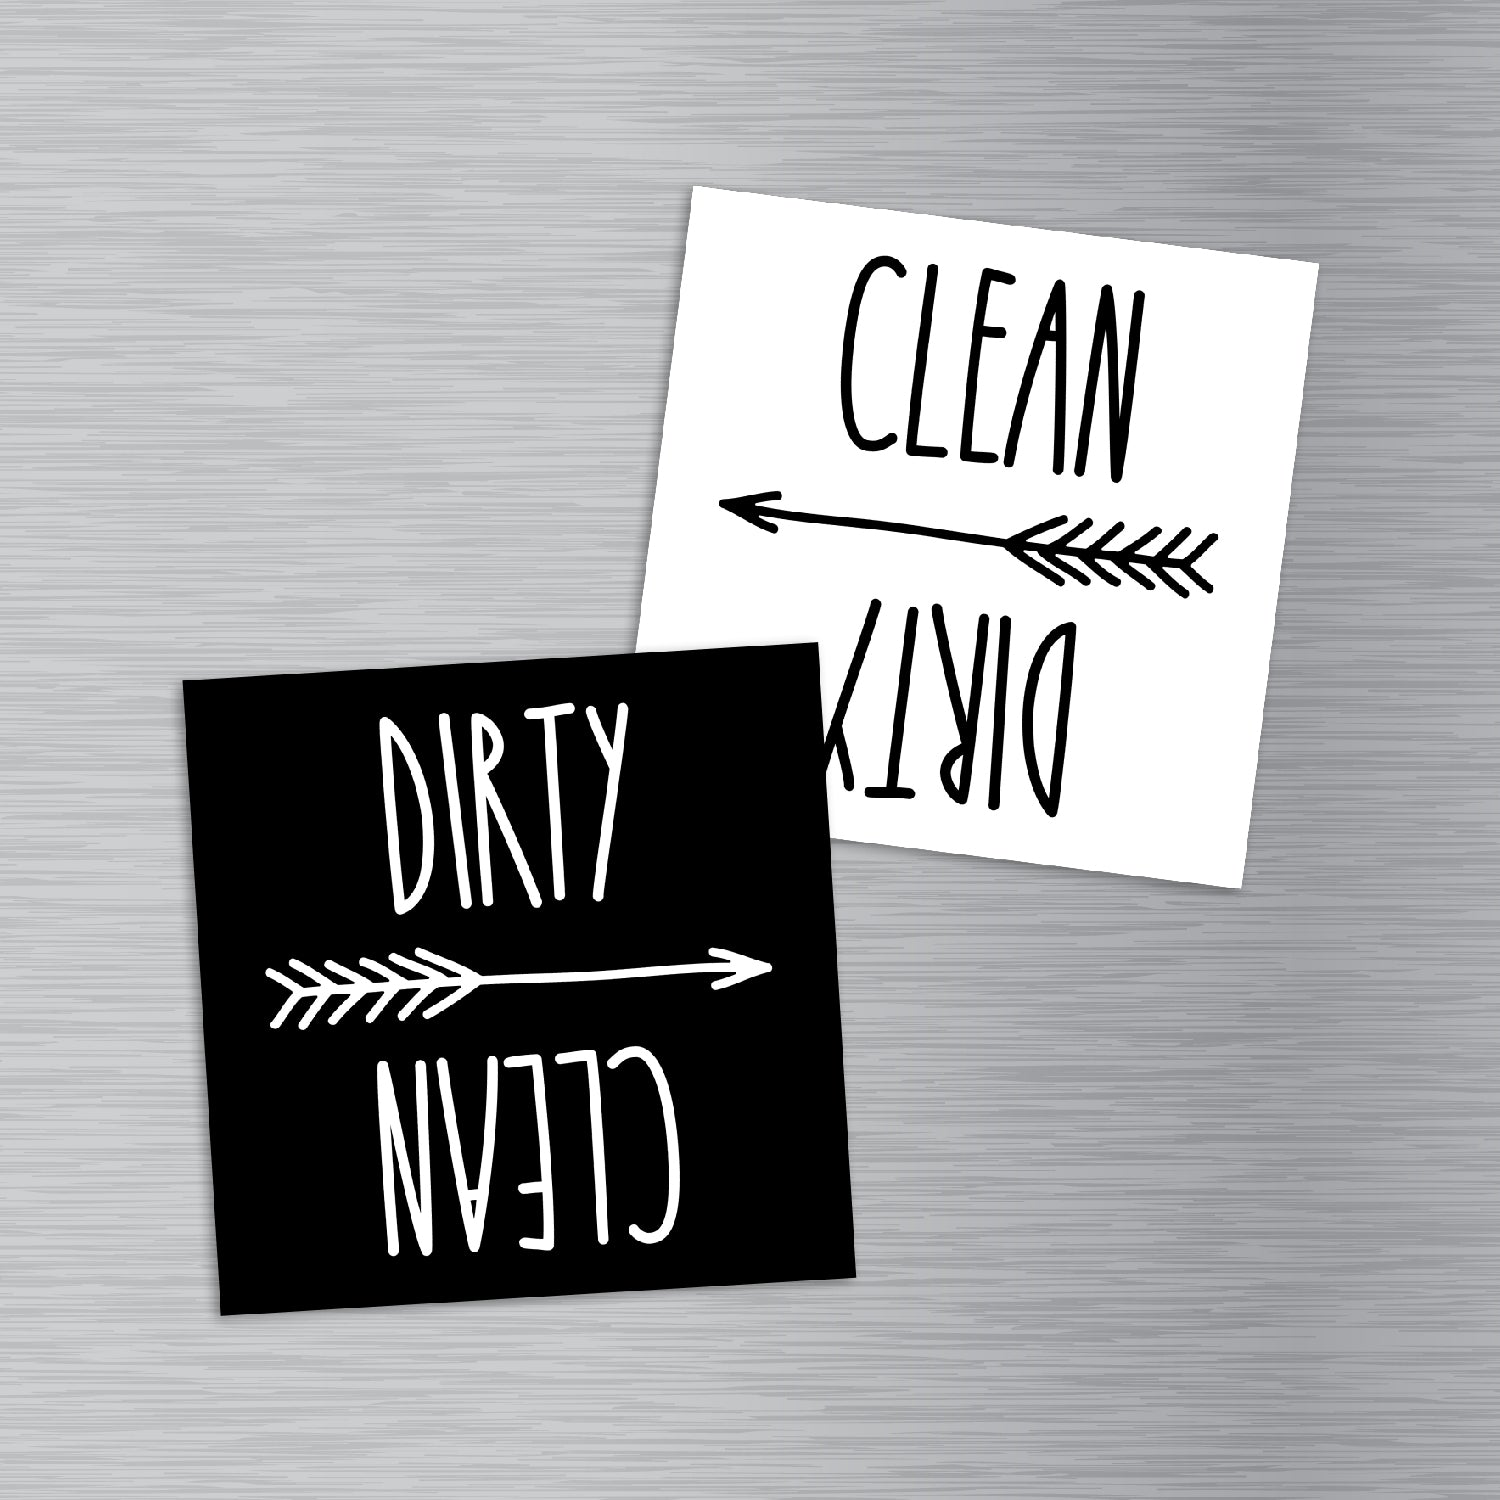 Dirty Clean Dishwasher Magnet Clean Dirty Dishwasher Magnet Dishes Reminder Magnet